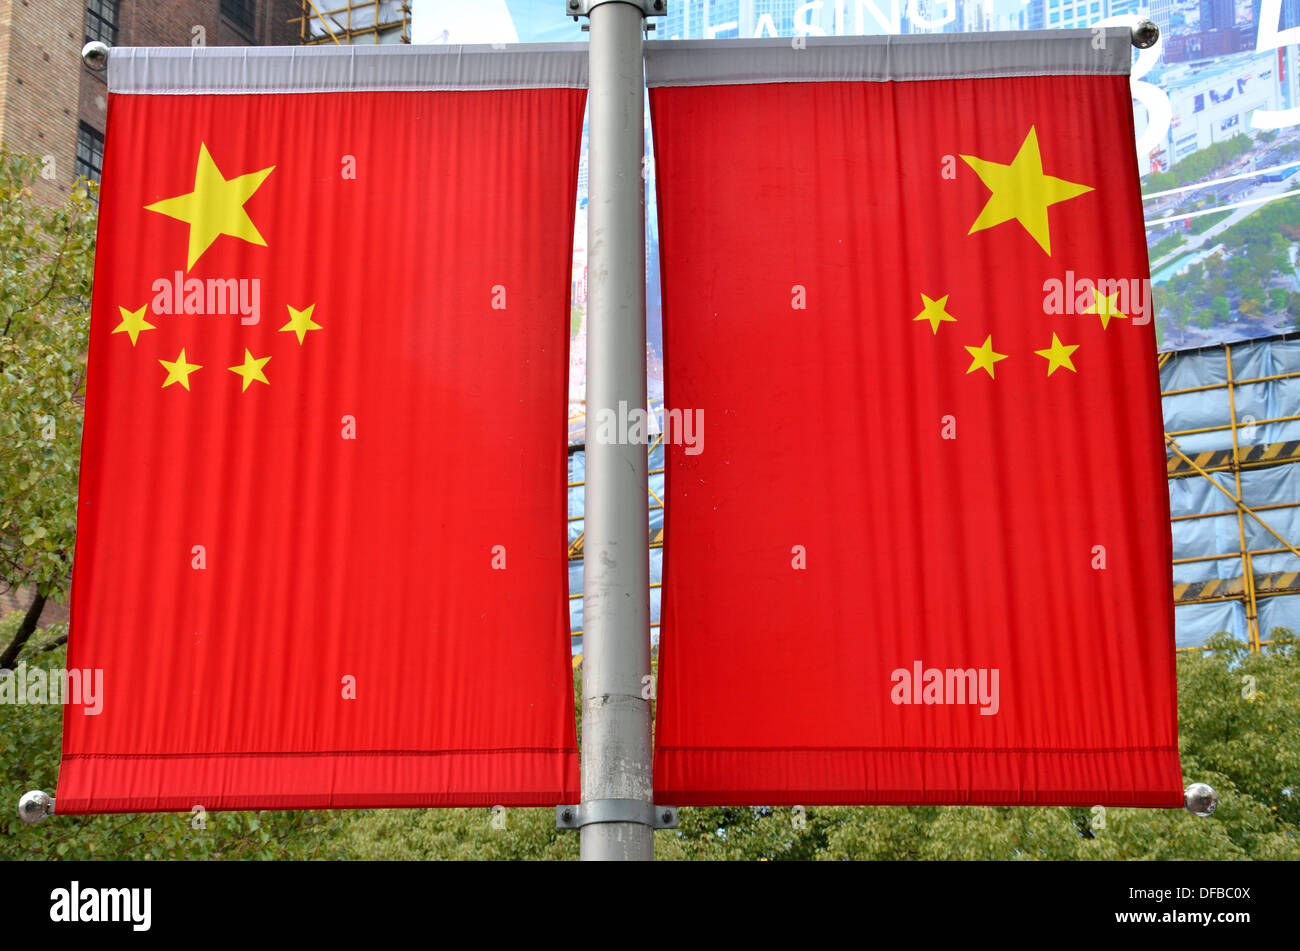 Two China flags on Shanghai lamppost - Stock Image